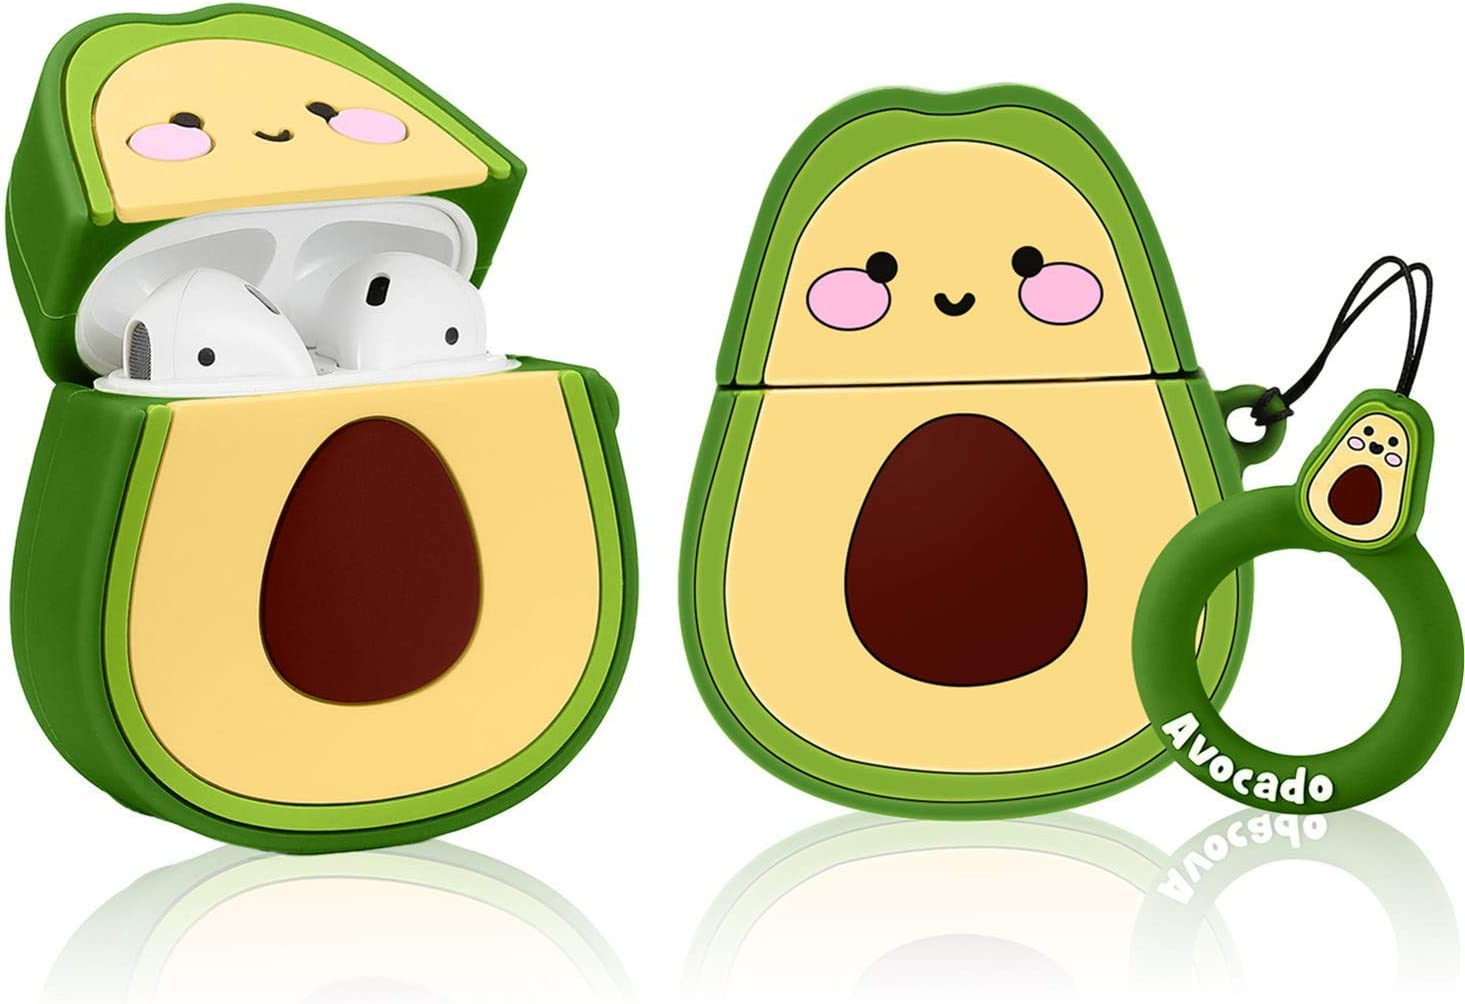 Coralogo Compatible with Airpods 1/2 Cute Case,Cartoon Character Silicone Fruit Airpod Designer Skin Kawaii Funny Fun Cool Keychain Design Cover Kids Teens Air pods Cases for Girls Boys(3D Avocado)